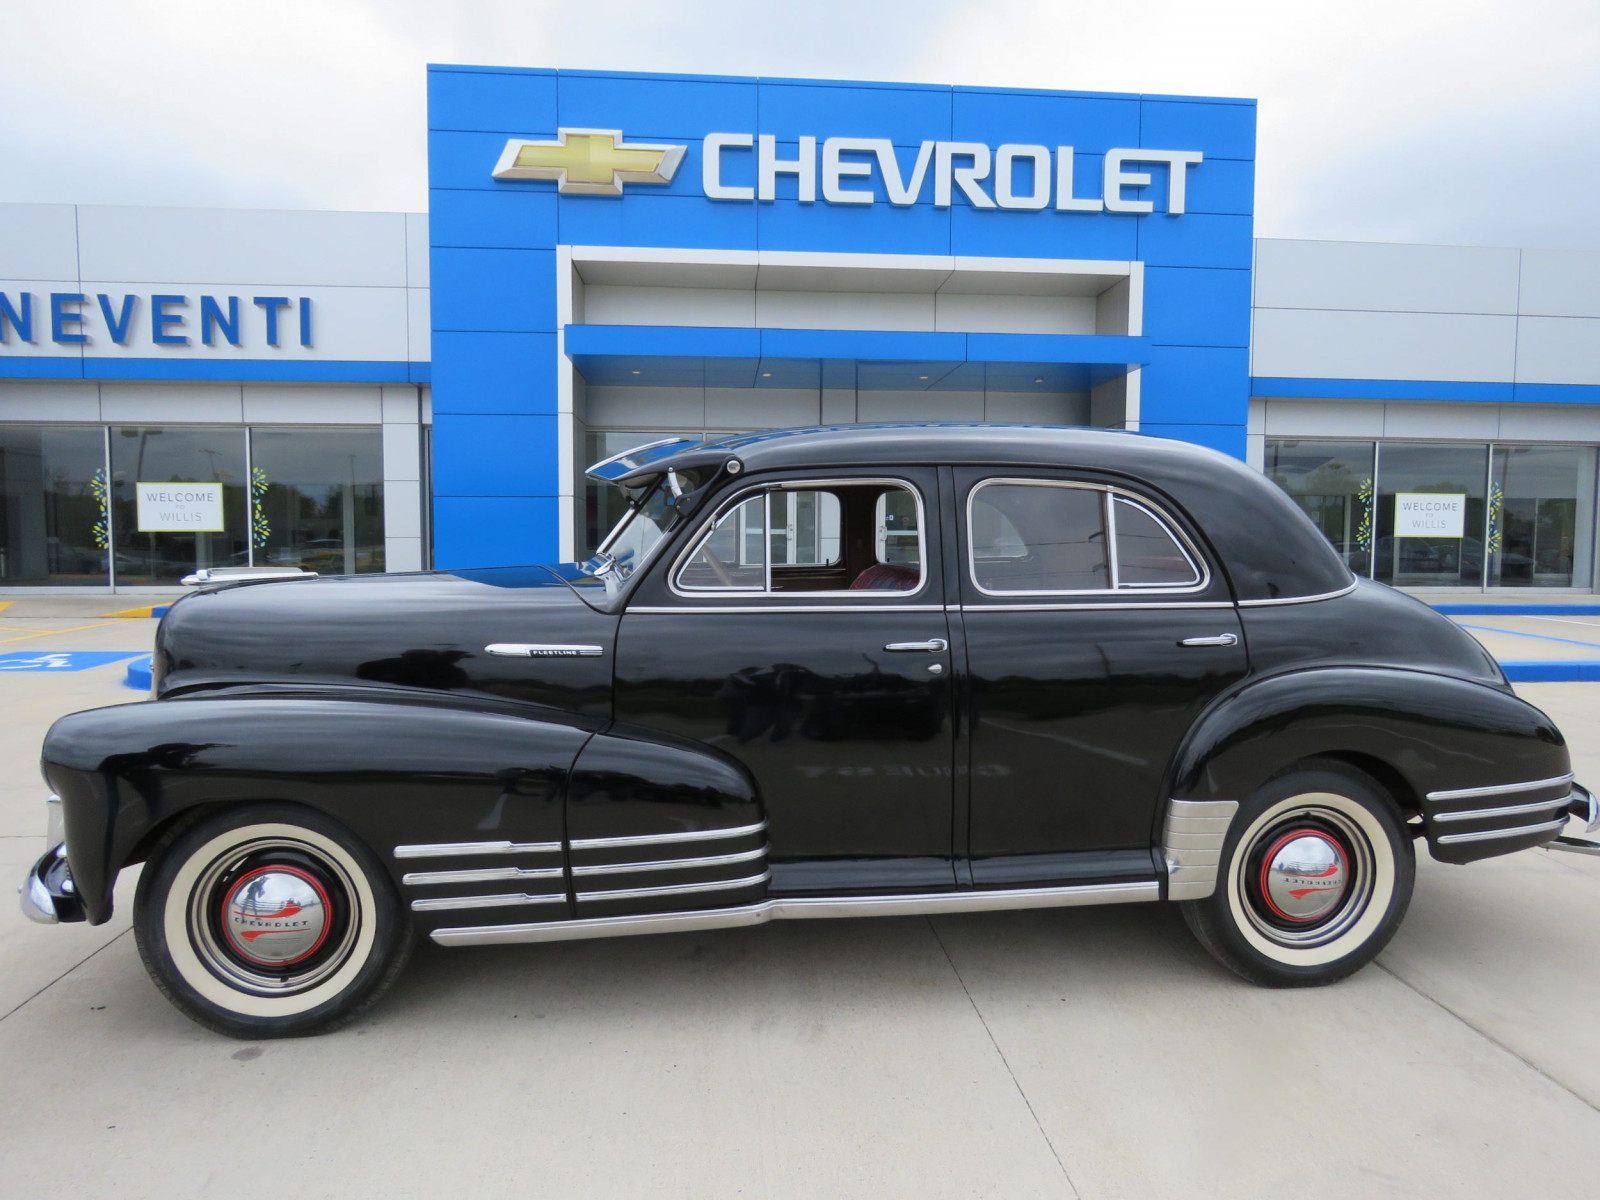 1947 Chevrolet Fleetline 4dr Sedan - Image 1